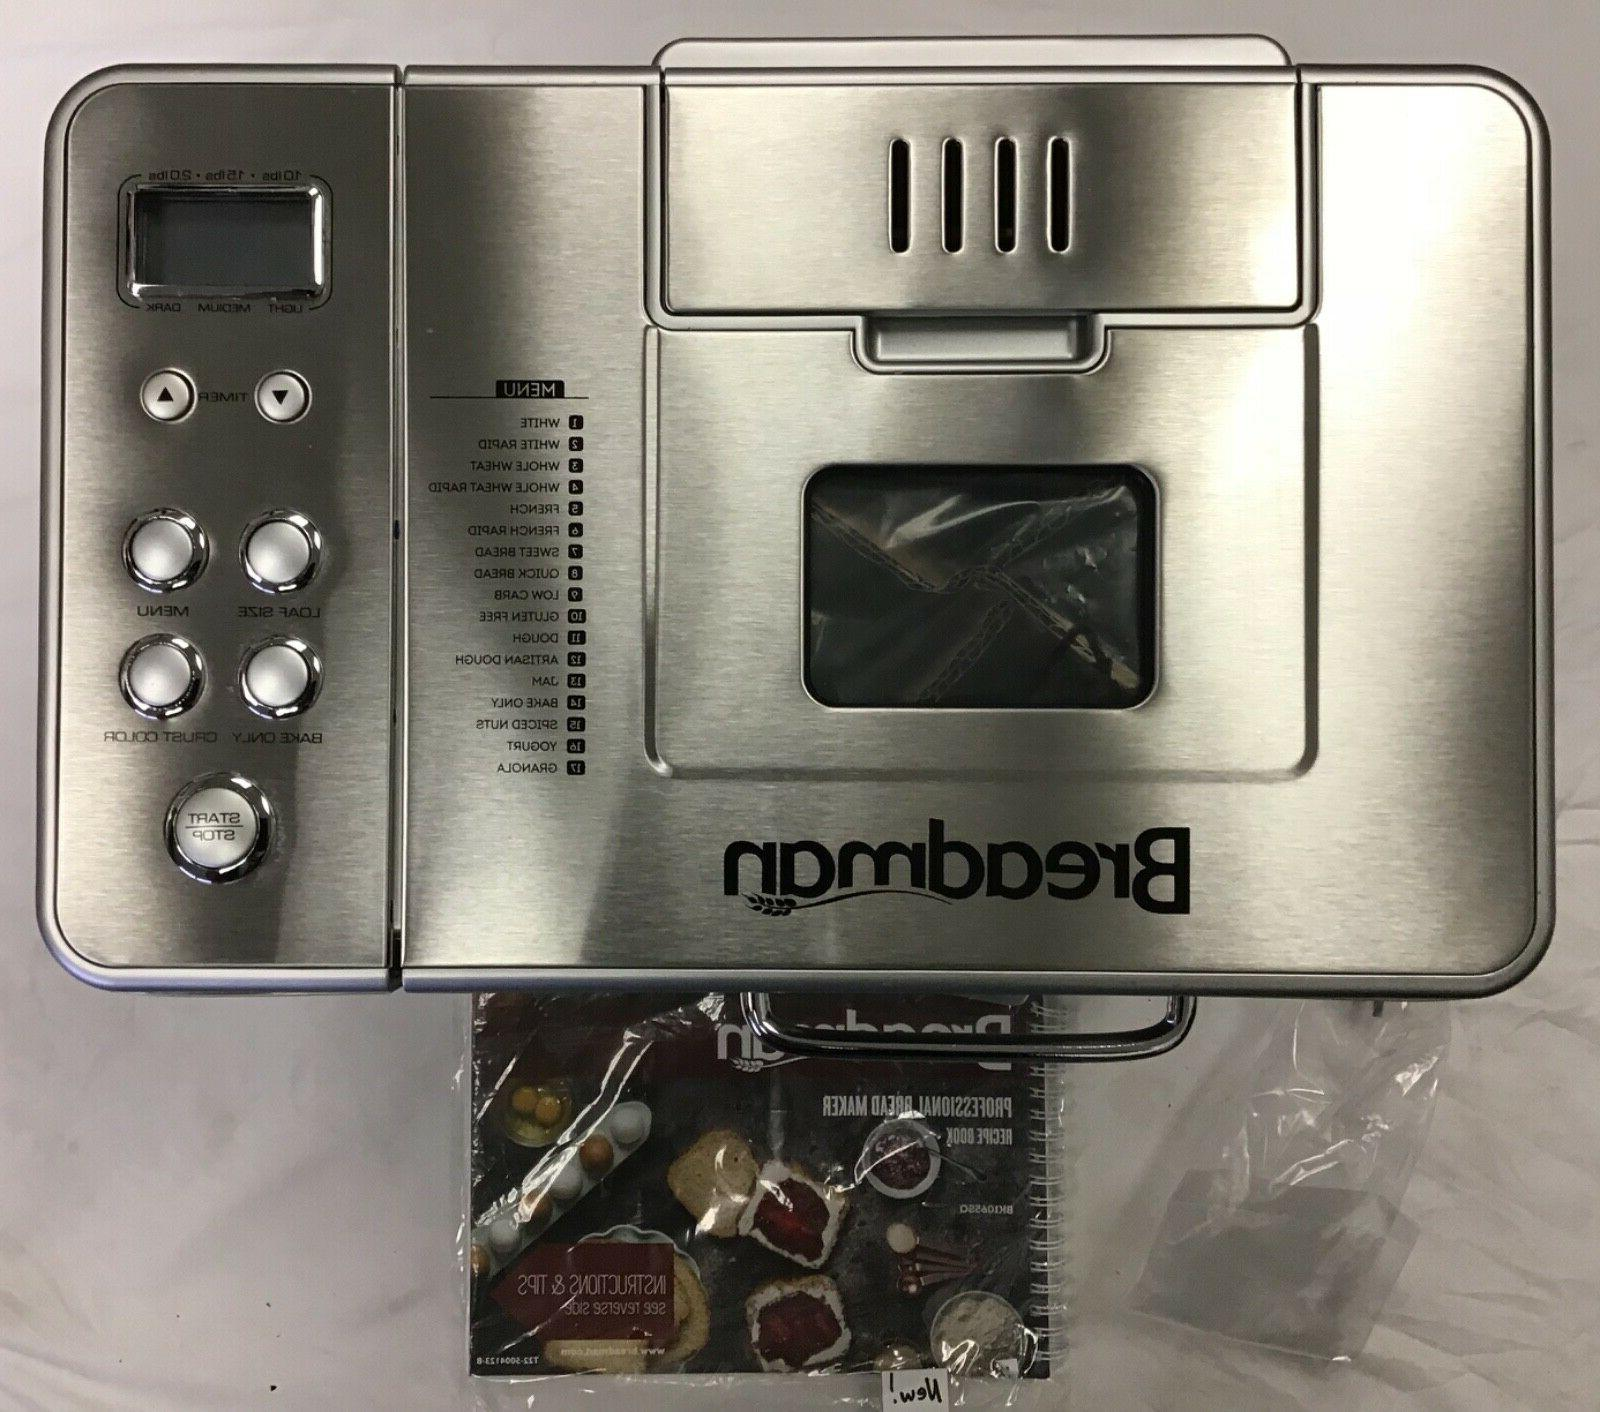 Breadman Bread Stainless NEW - NO BOX